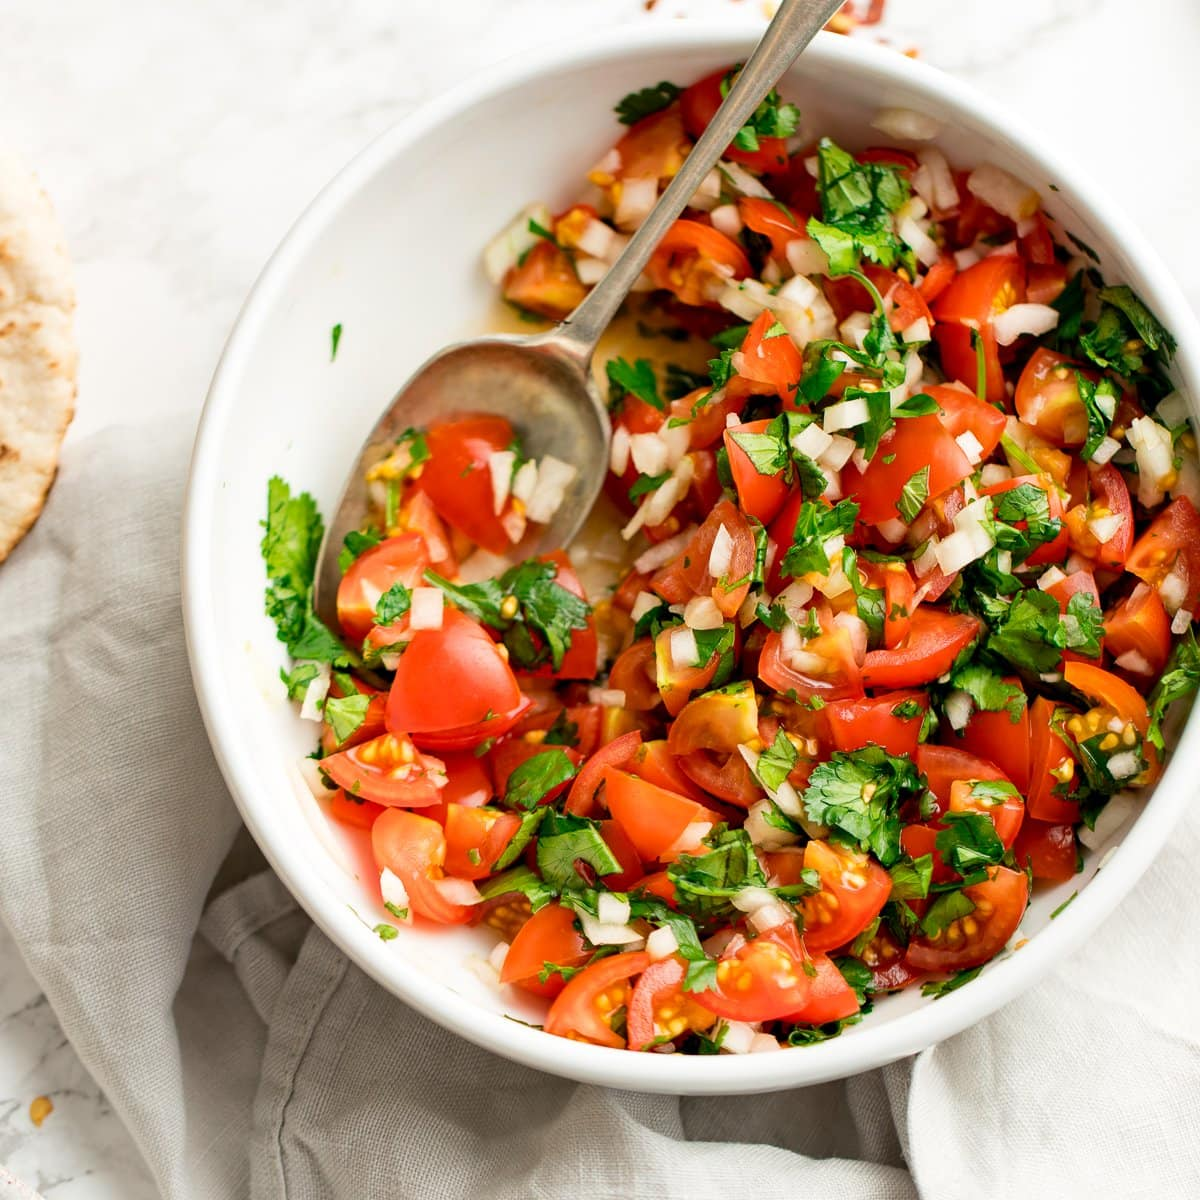 tomato, onion and coriander chopped salad in a white bowl on a light background. Spoon in the salad.